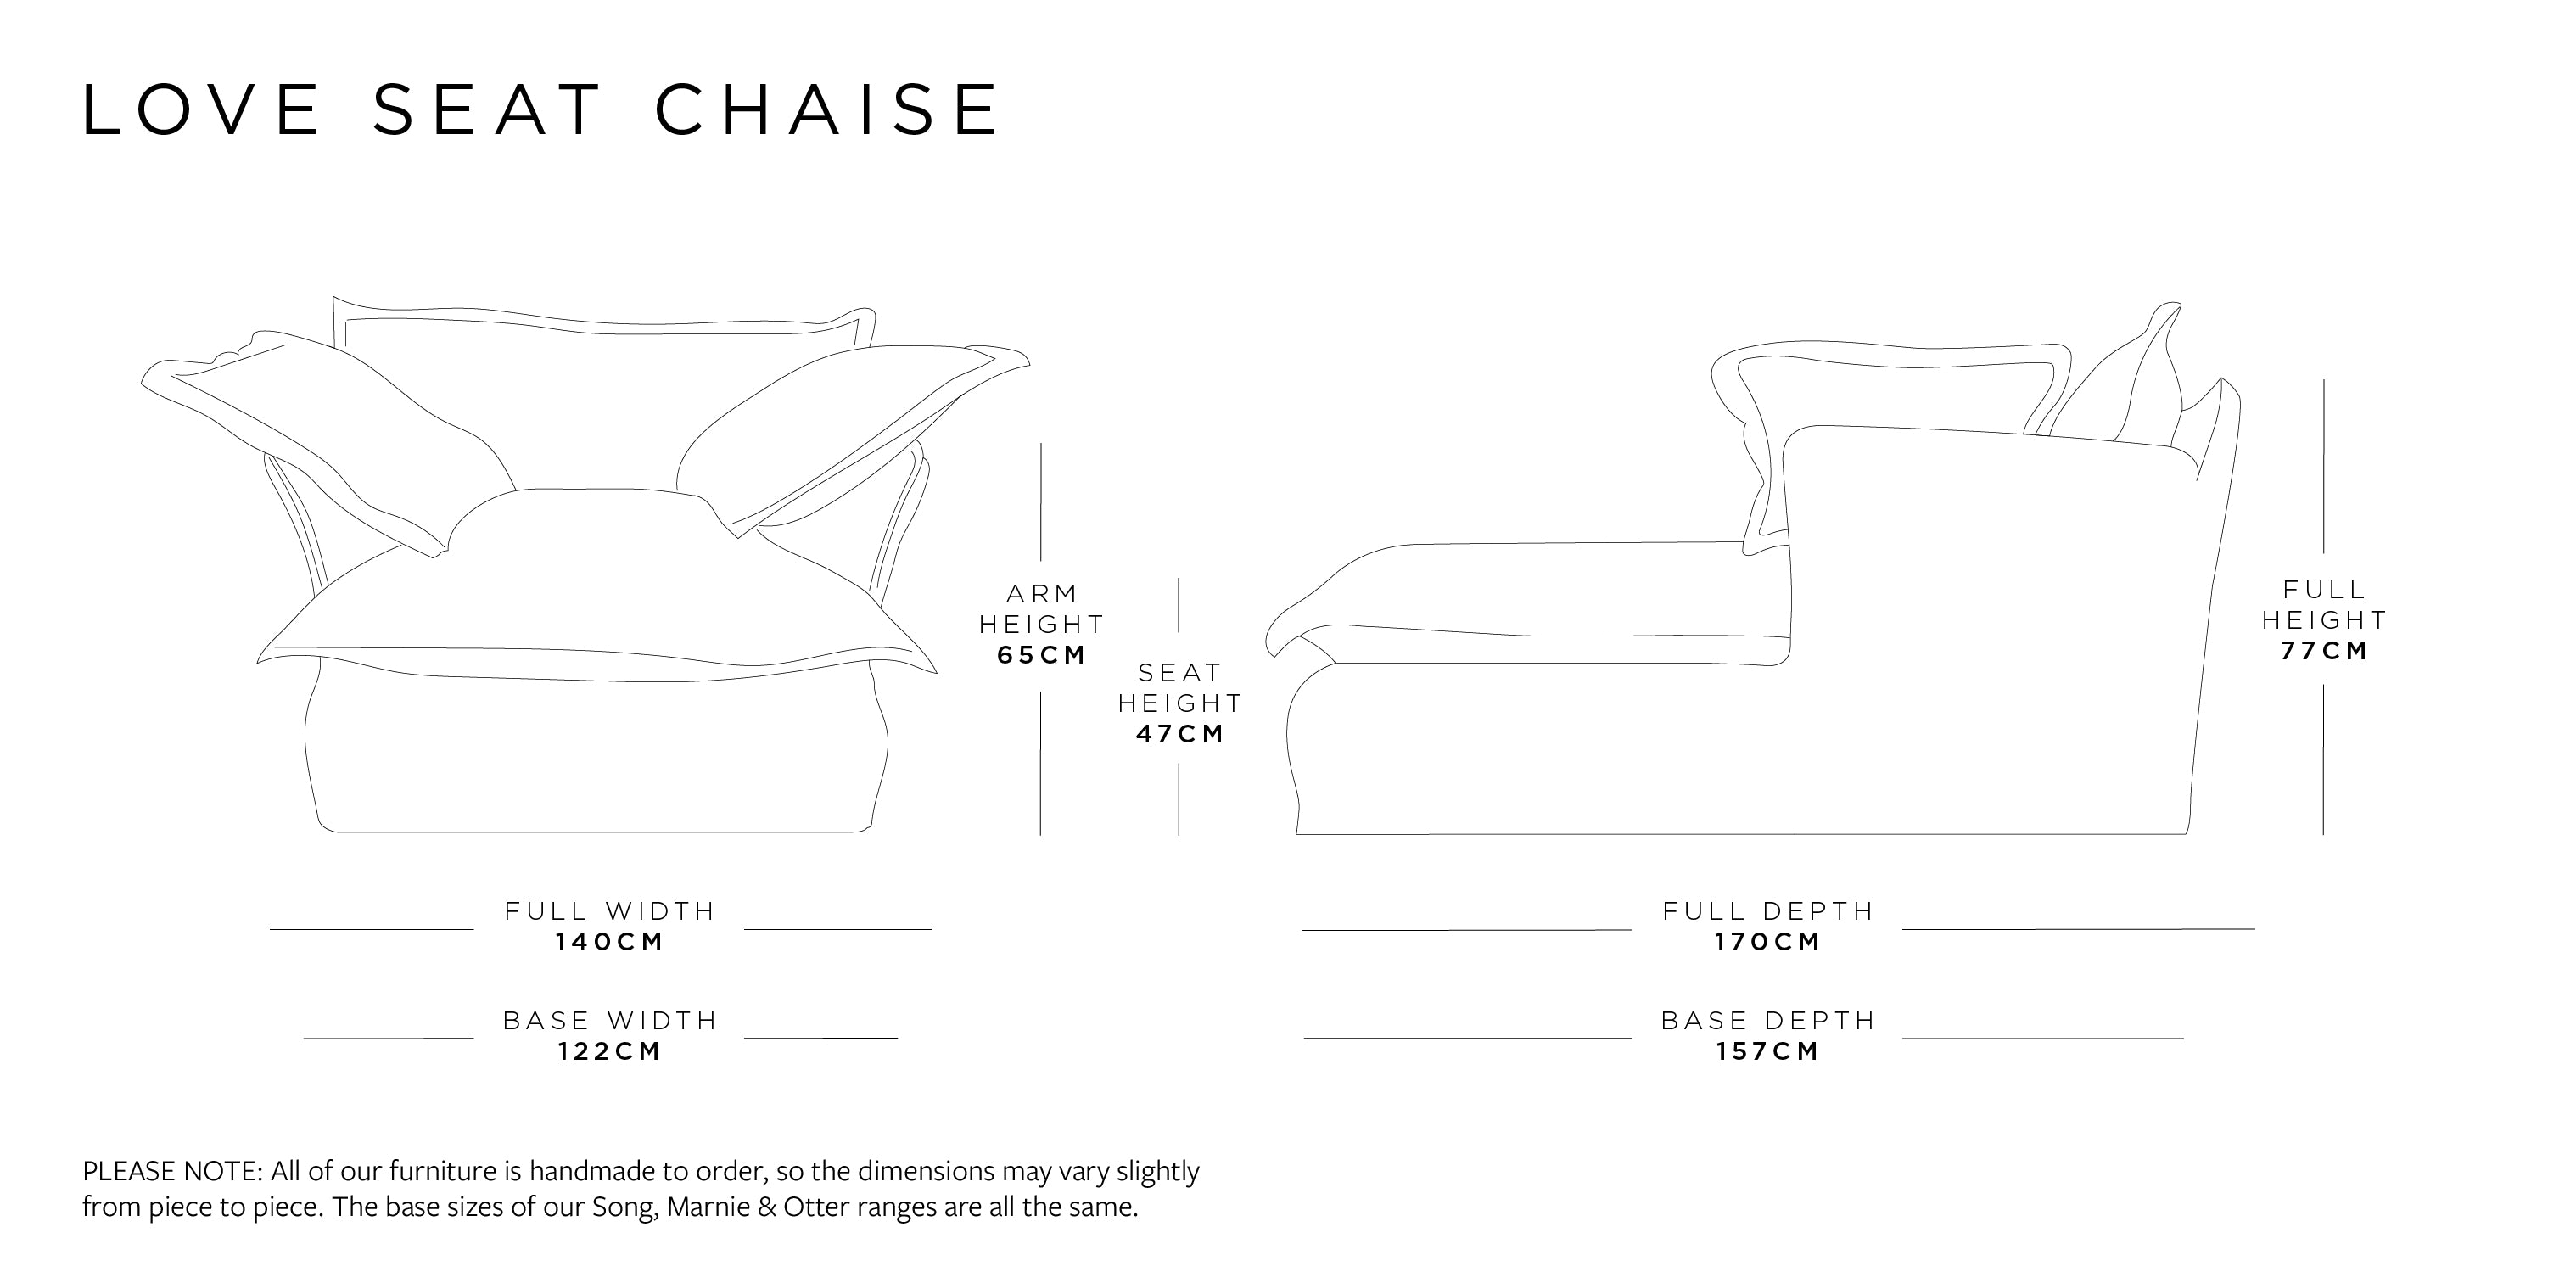 Love Seat Chaise Dimensions